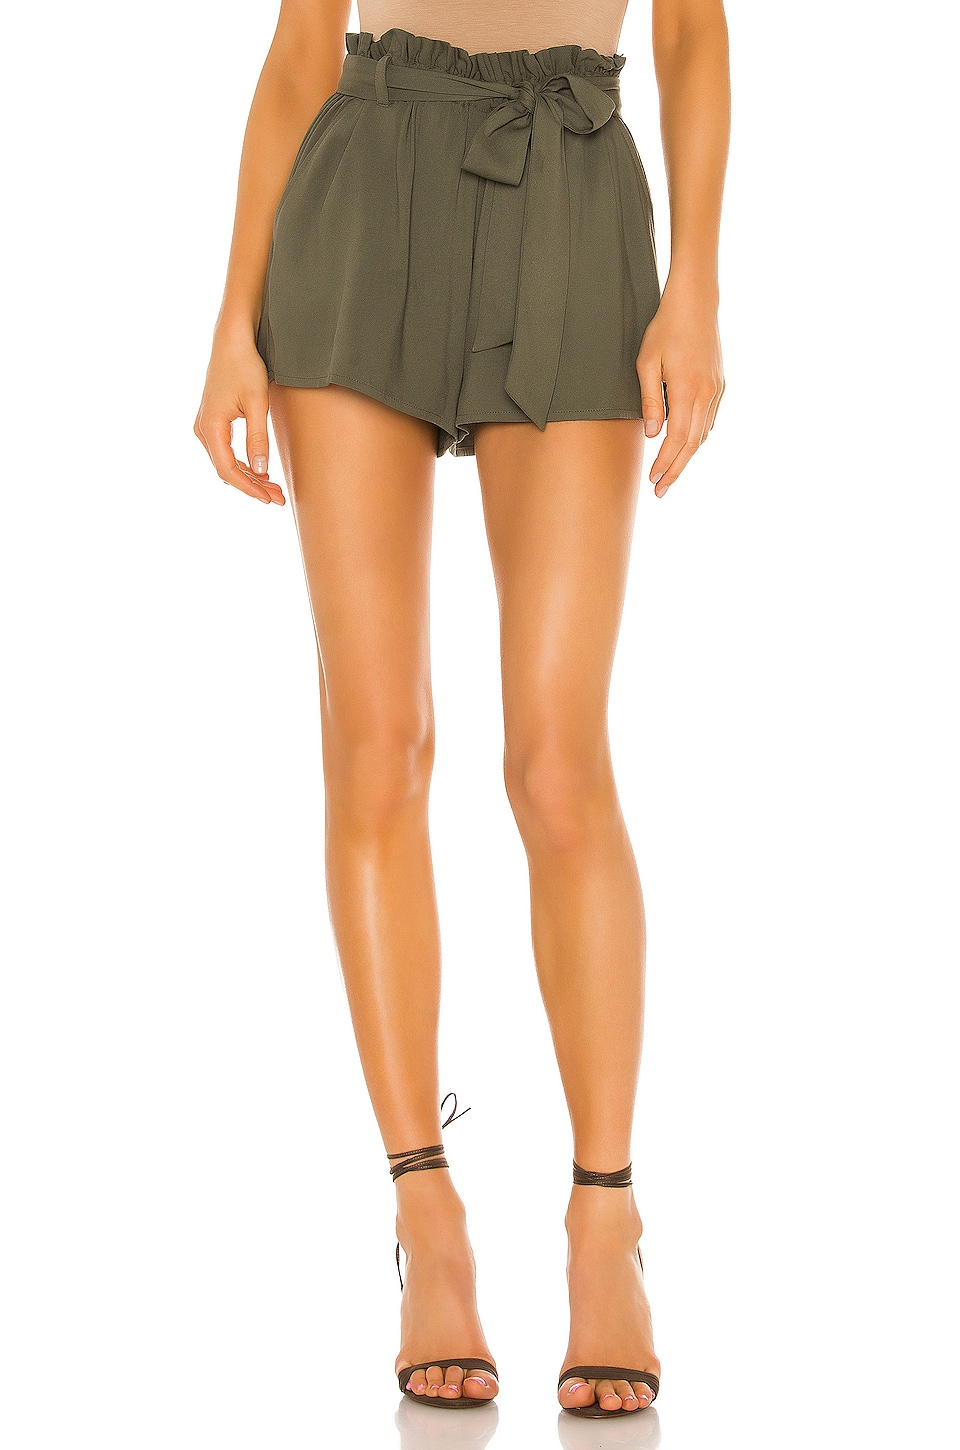 BB Dakota JACK by BB Dakota Secure The Bag Short in Sage